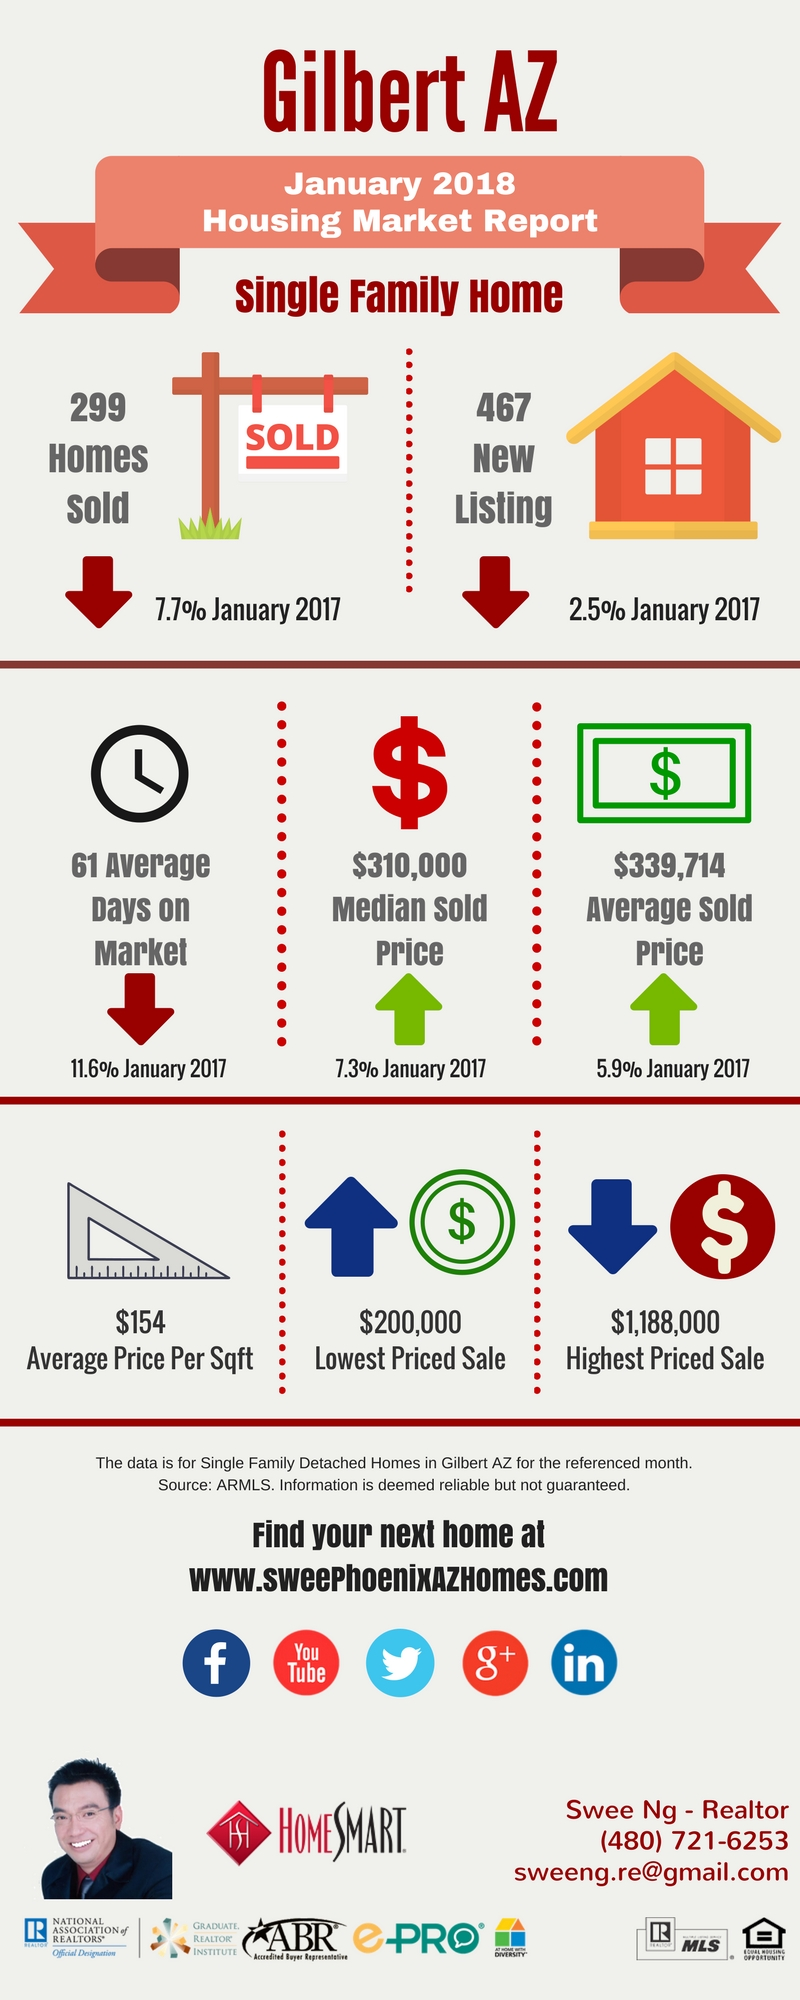 Gilbert AZ Housing Market Trends Report January 2018 by Swee Ng, Real Estate and House Value